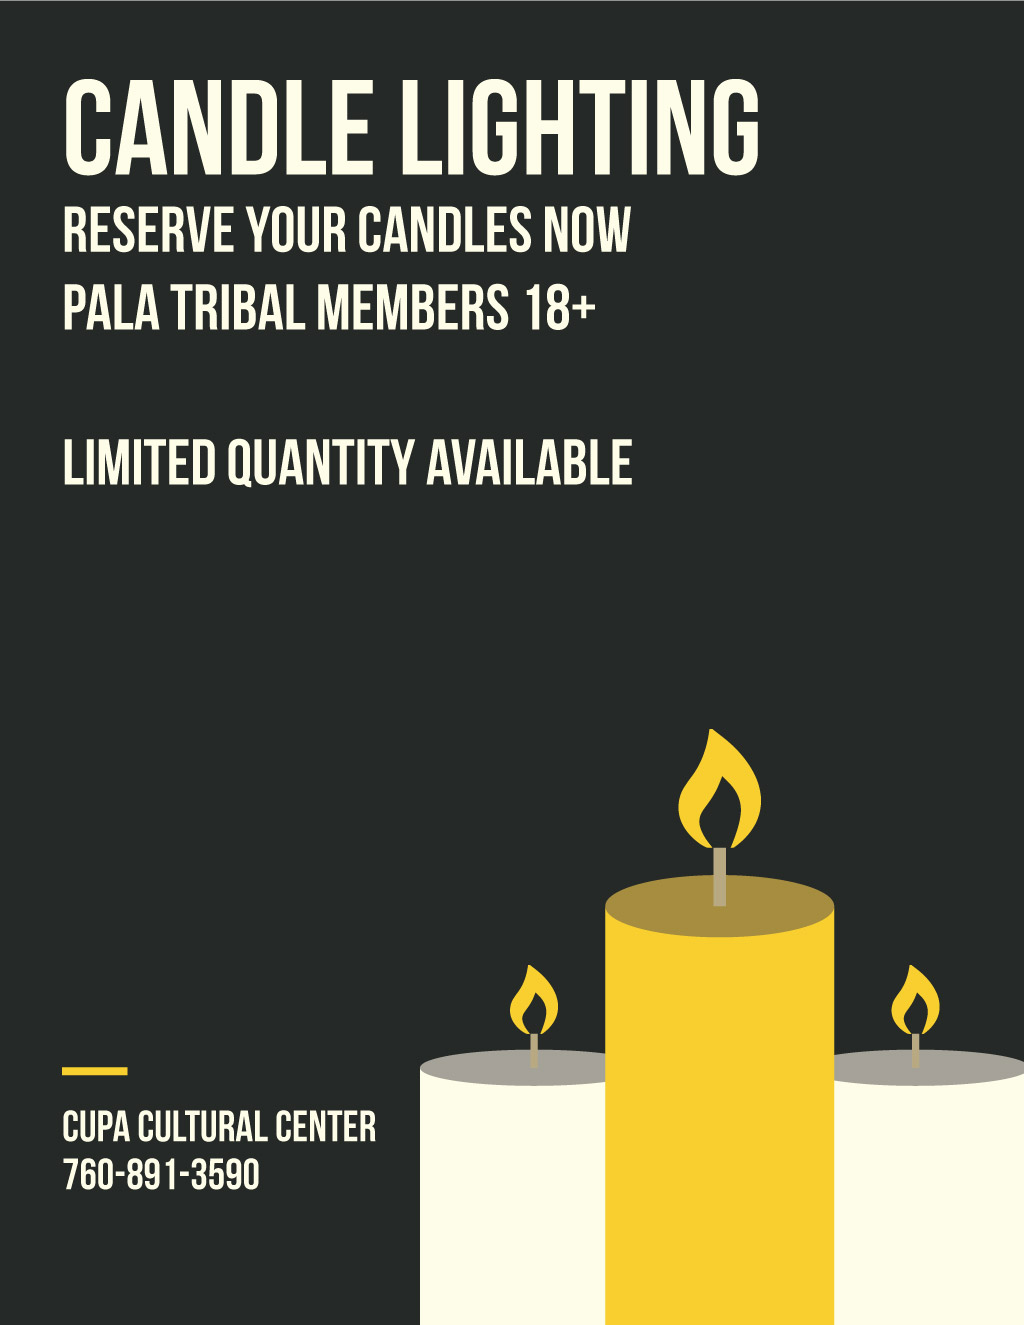 Pala Band of Mission Indians Pala Candle Lighting Cupa Cultural Center